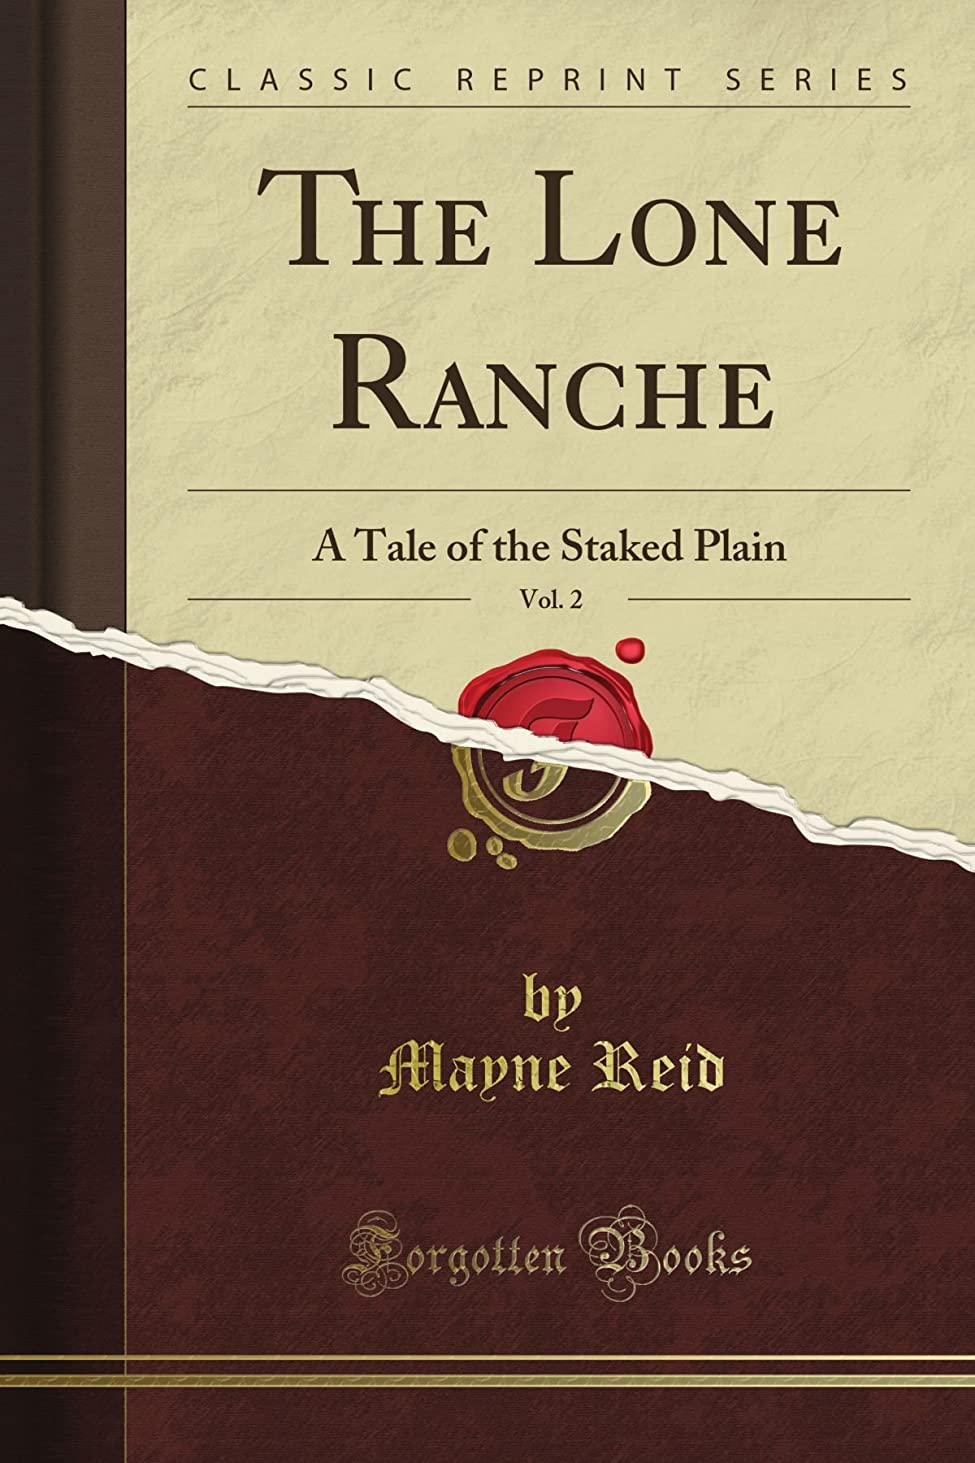 コンバーチブルチャートオーブンThe Lone Ranche: A Tale of the Staked Plain, Vol. 2 (Classic Reprint)